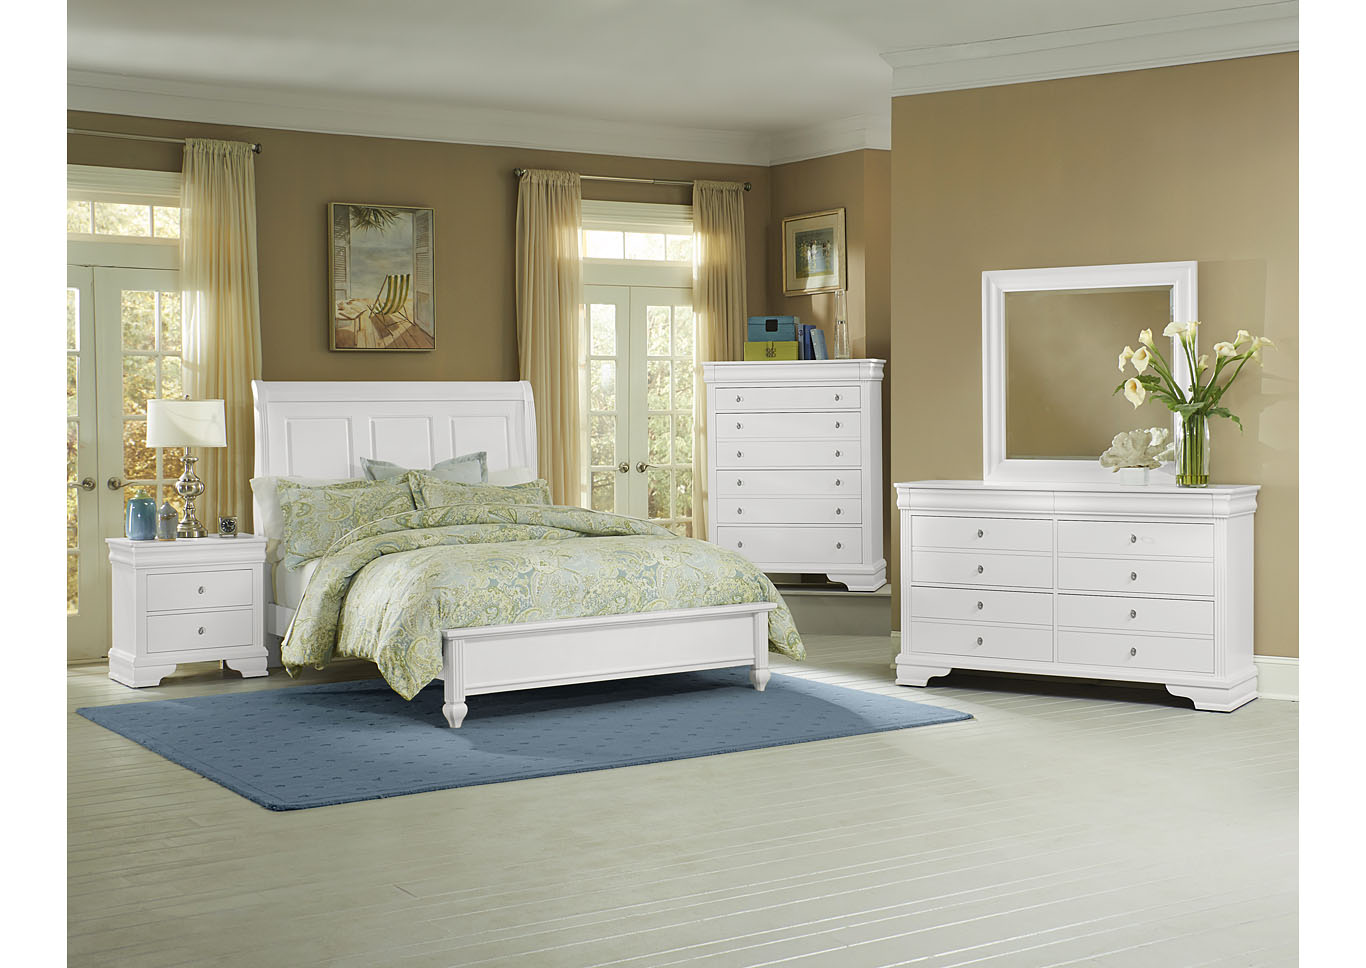 French Market Soft White Queen Sleigh Bed w/ Dresser, Mirror and Drawer Chest,Vaughan-Bassett